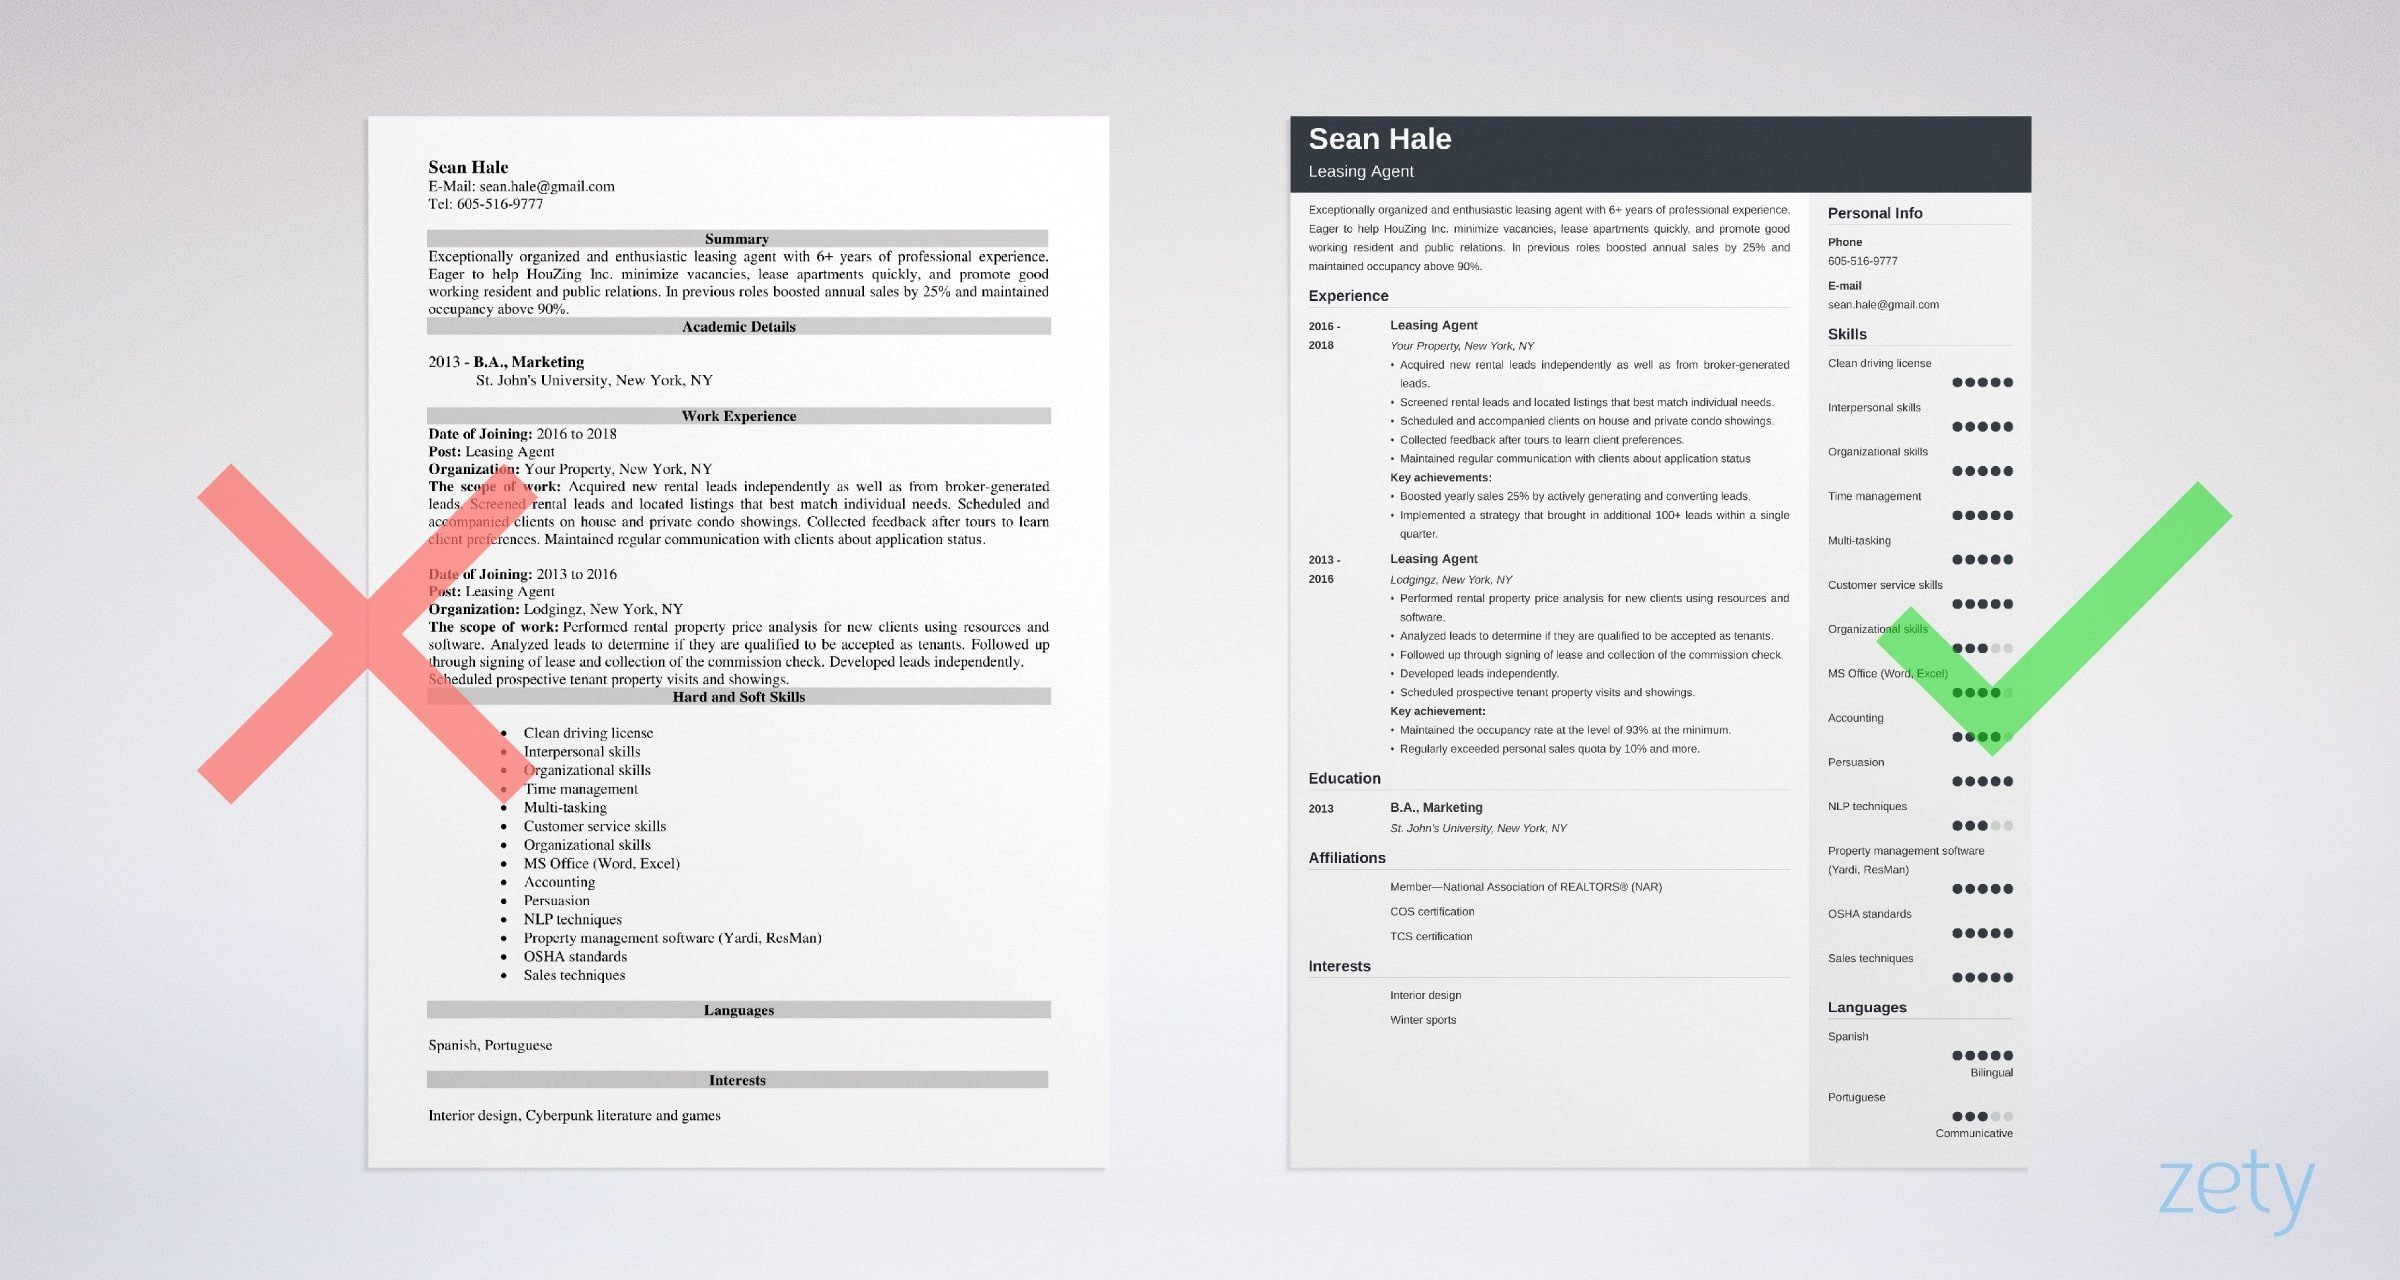 Leasing Agent Resume Sample Amp Writing Guide 20 Tips